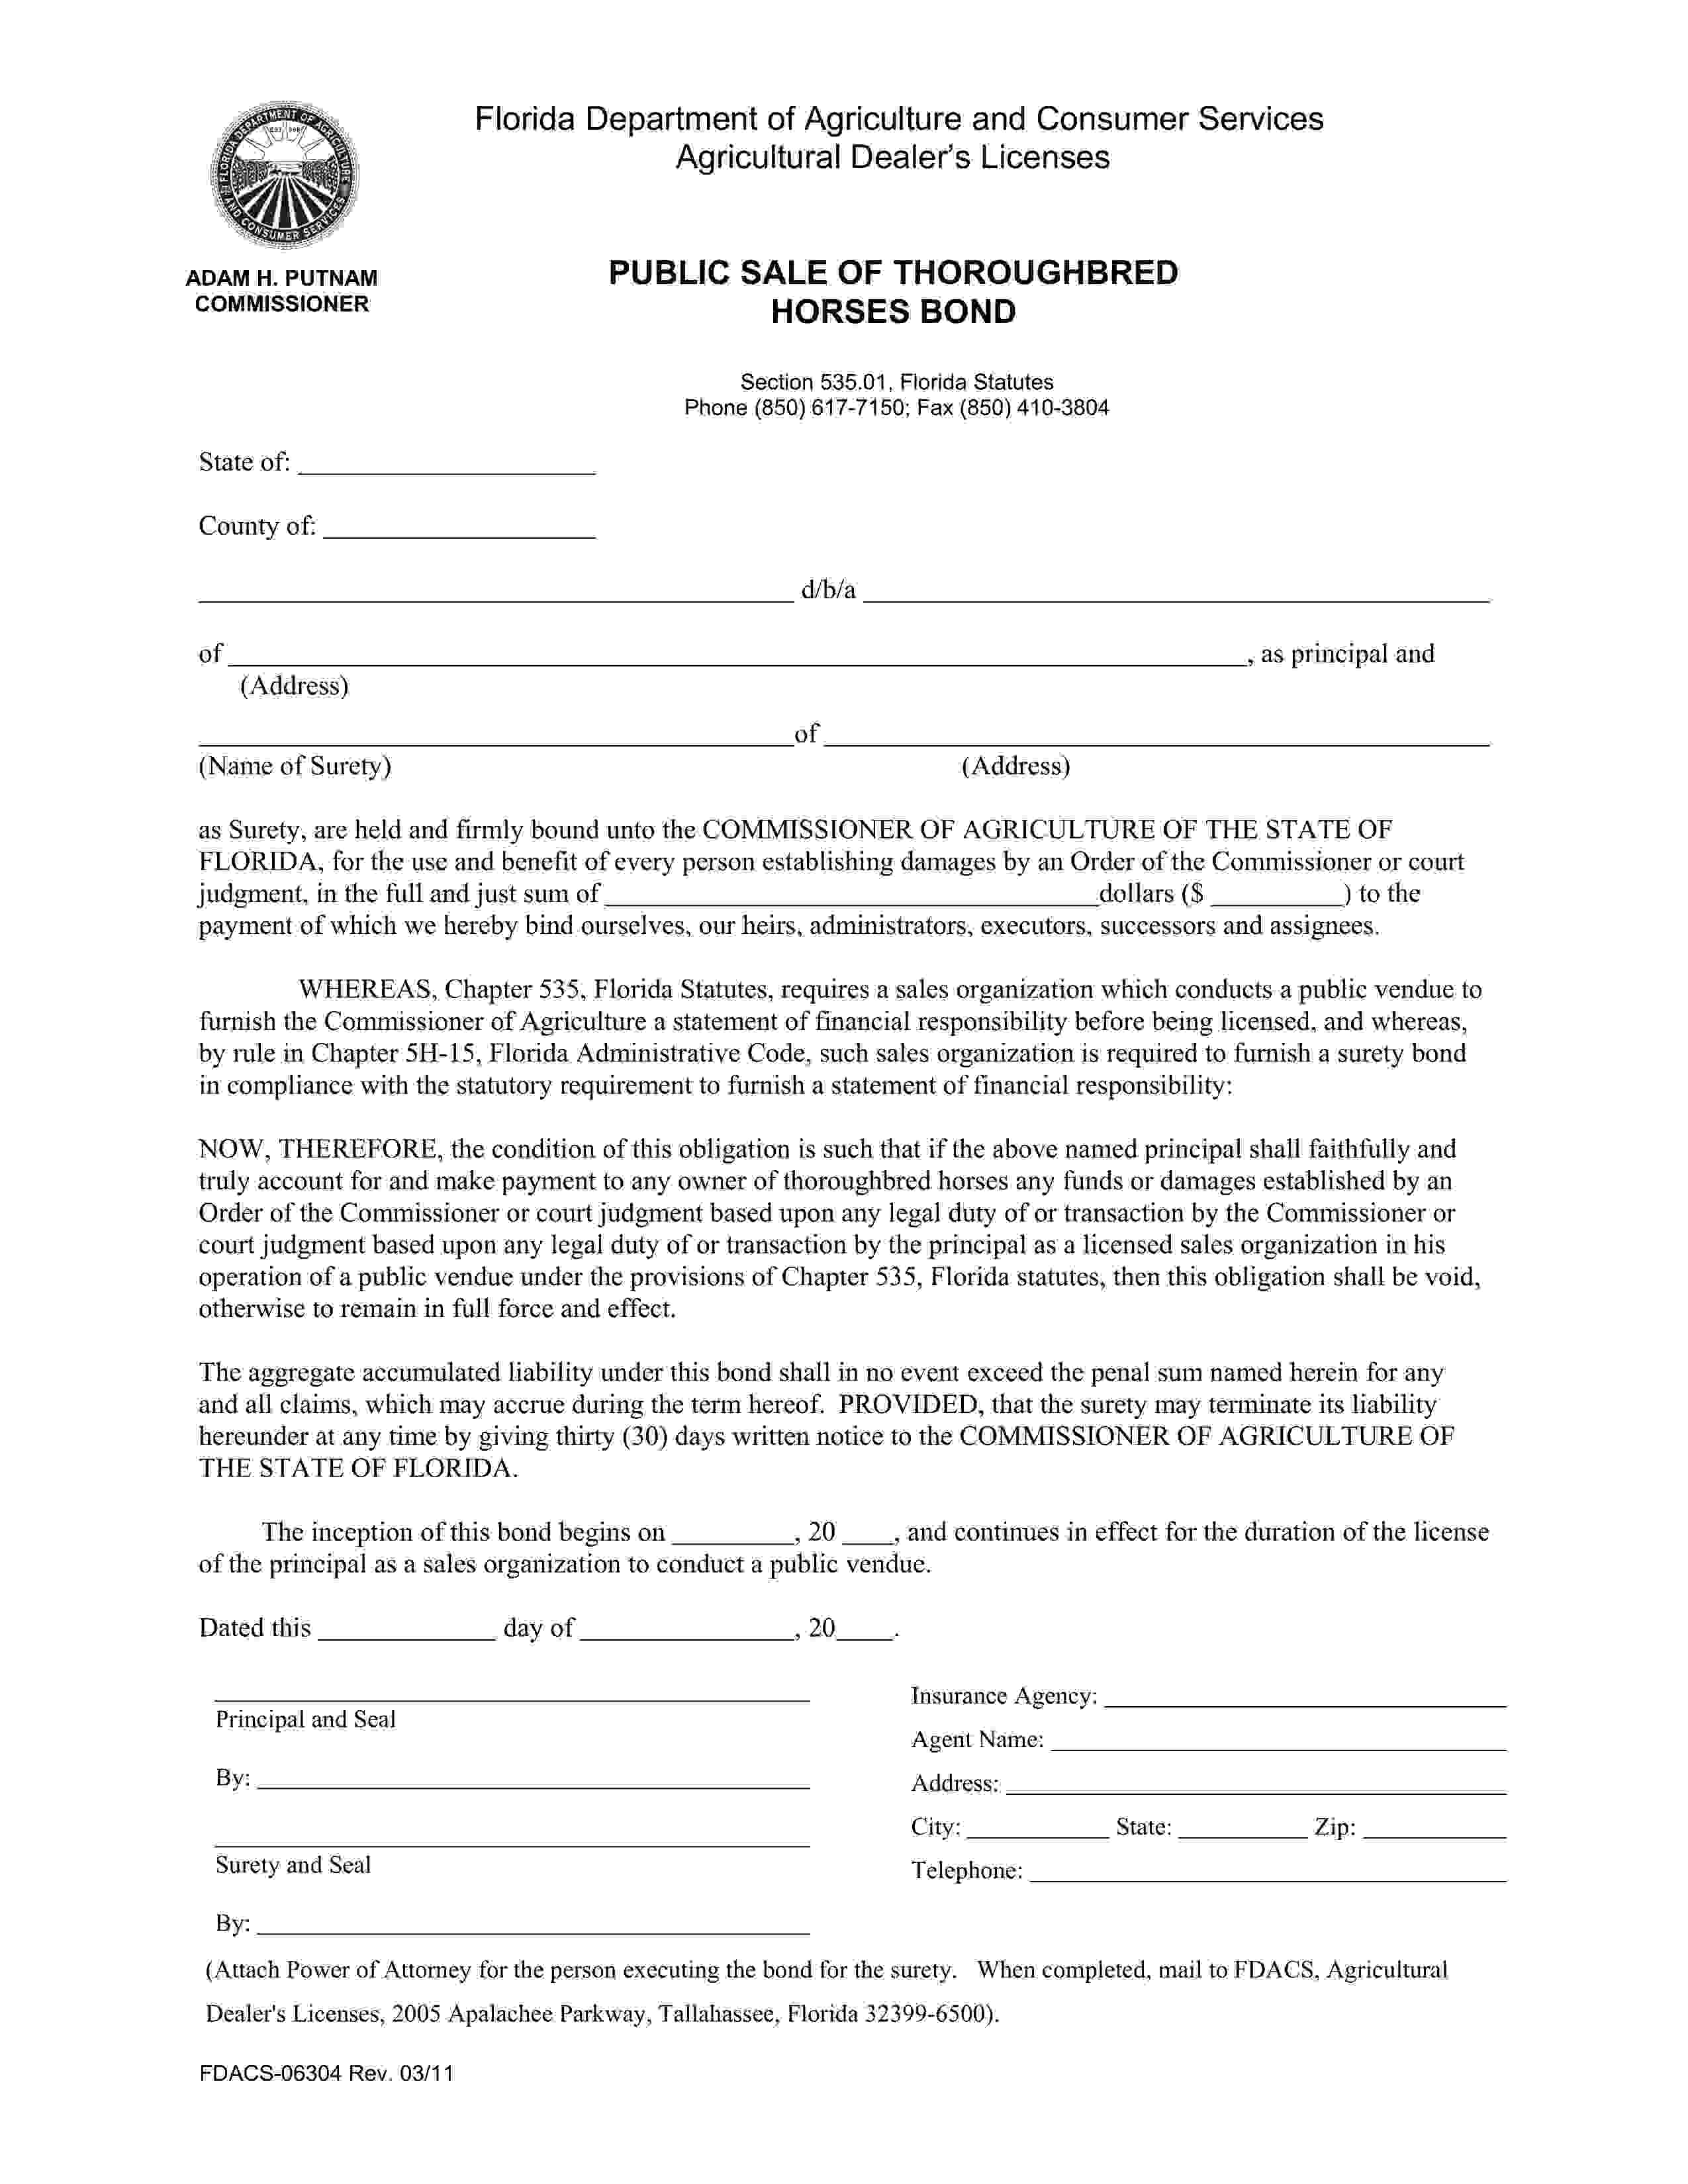 Commissioner of Agriculture of the State of Florida Public Sale of Thoroughbred Horses Bond sample image